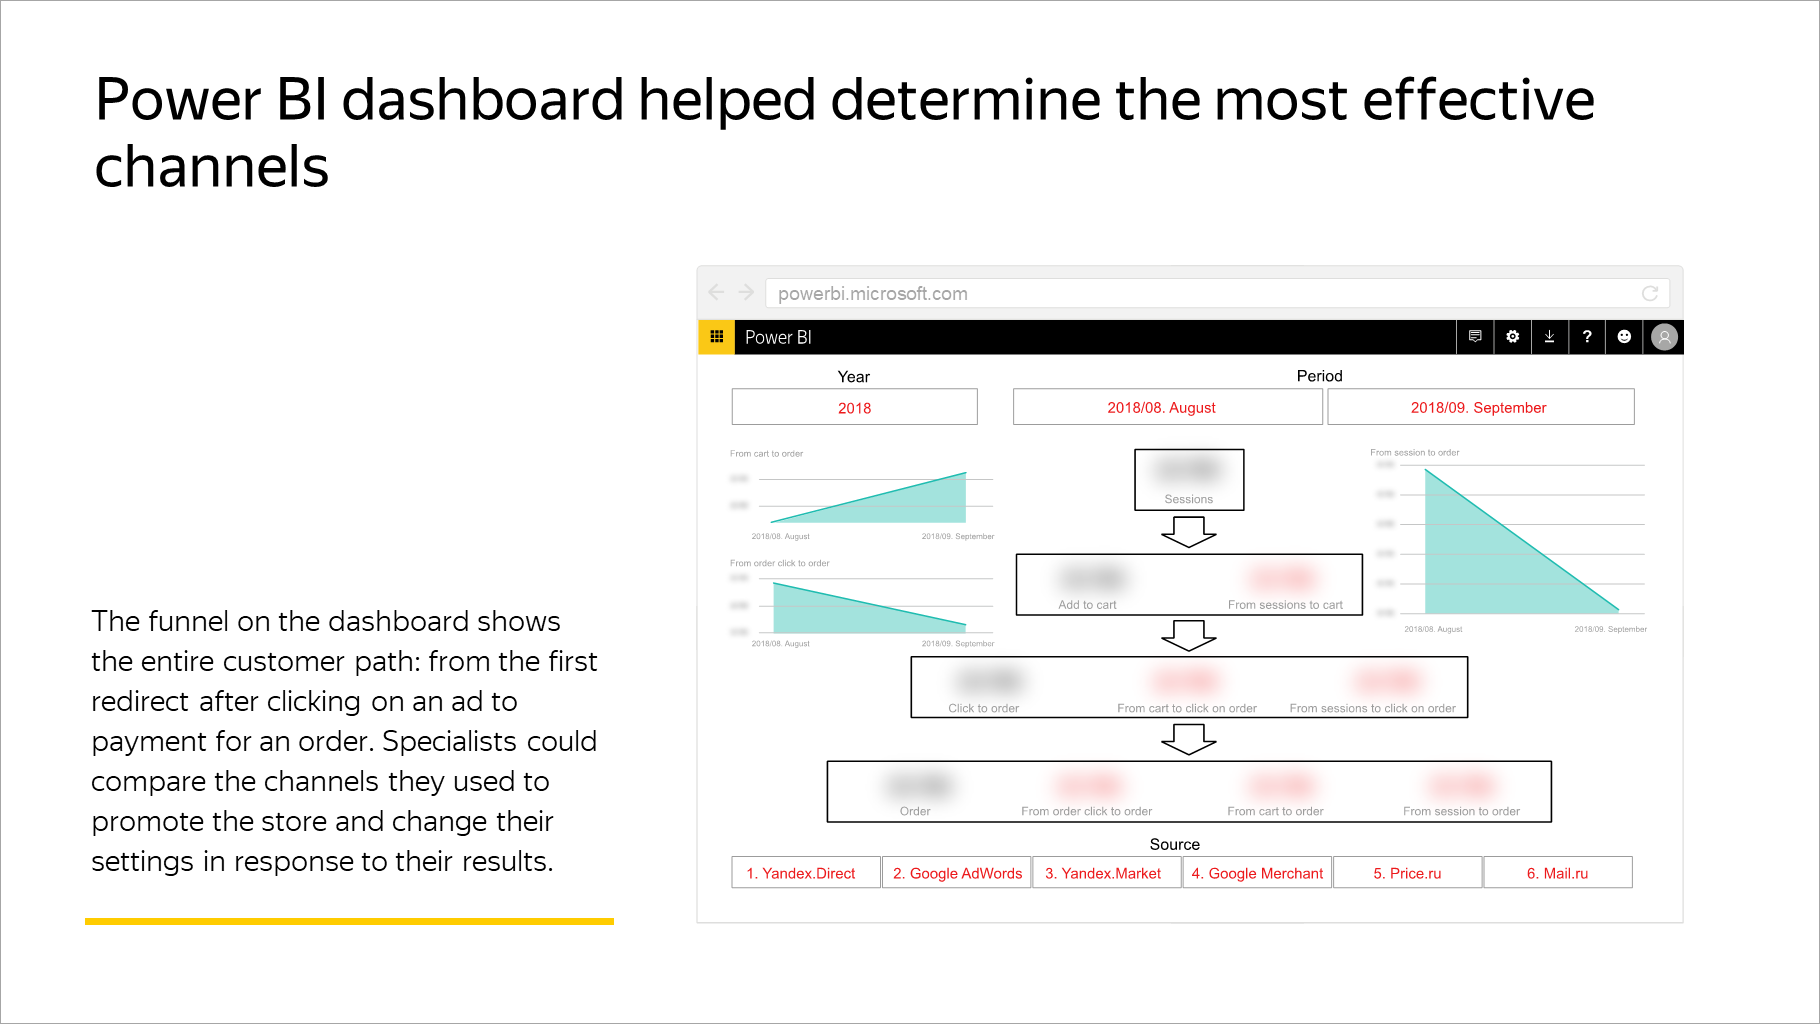 Power BI dashboard helped determine the most effective channels